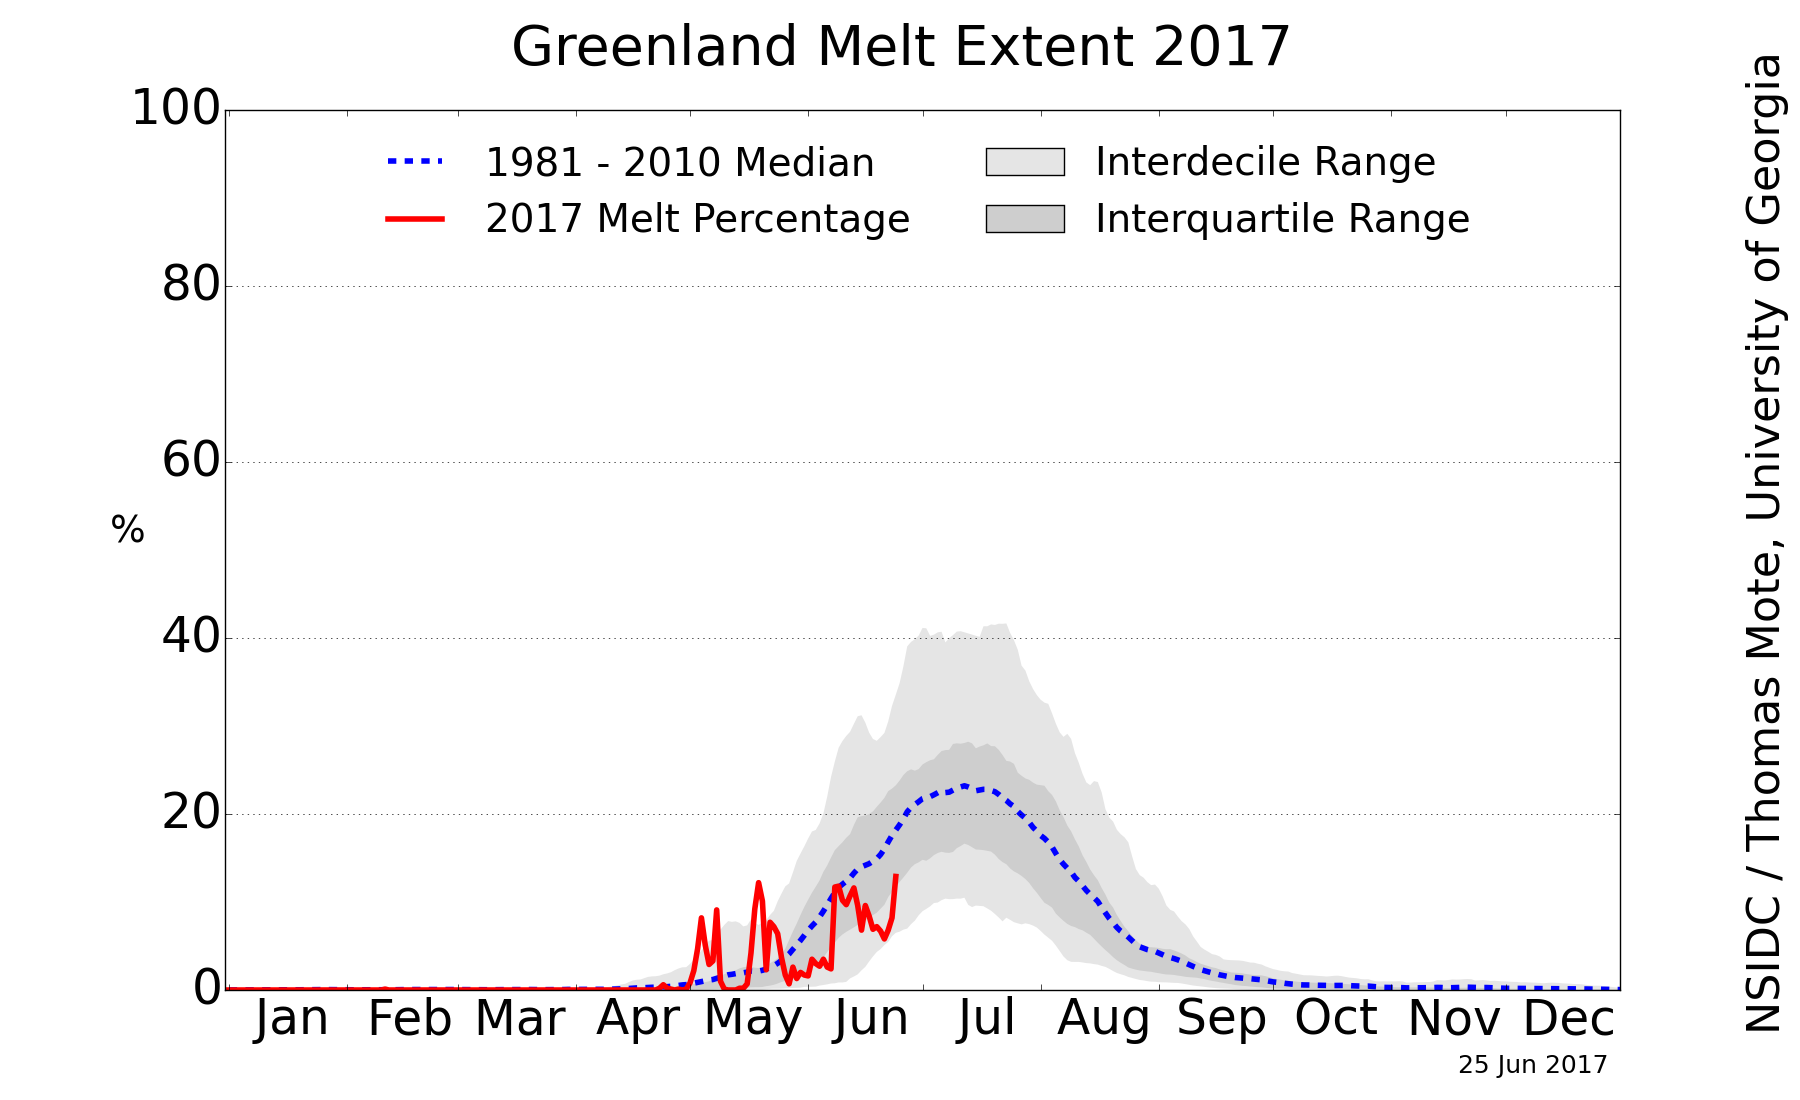 greenland_melt_area_plot.png